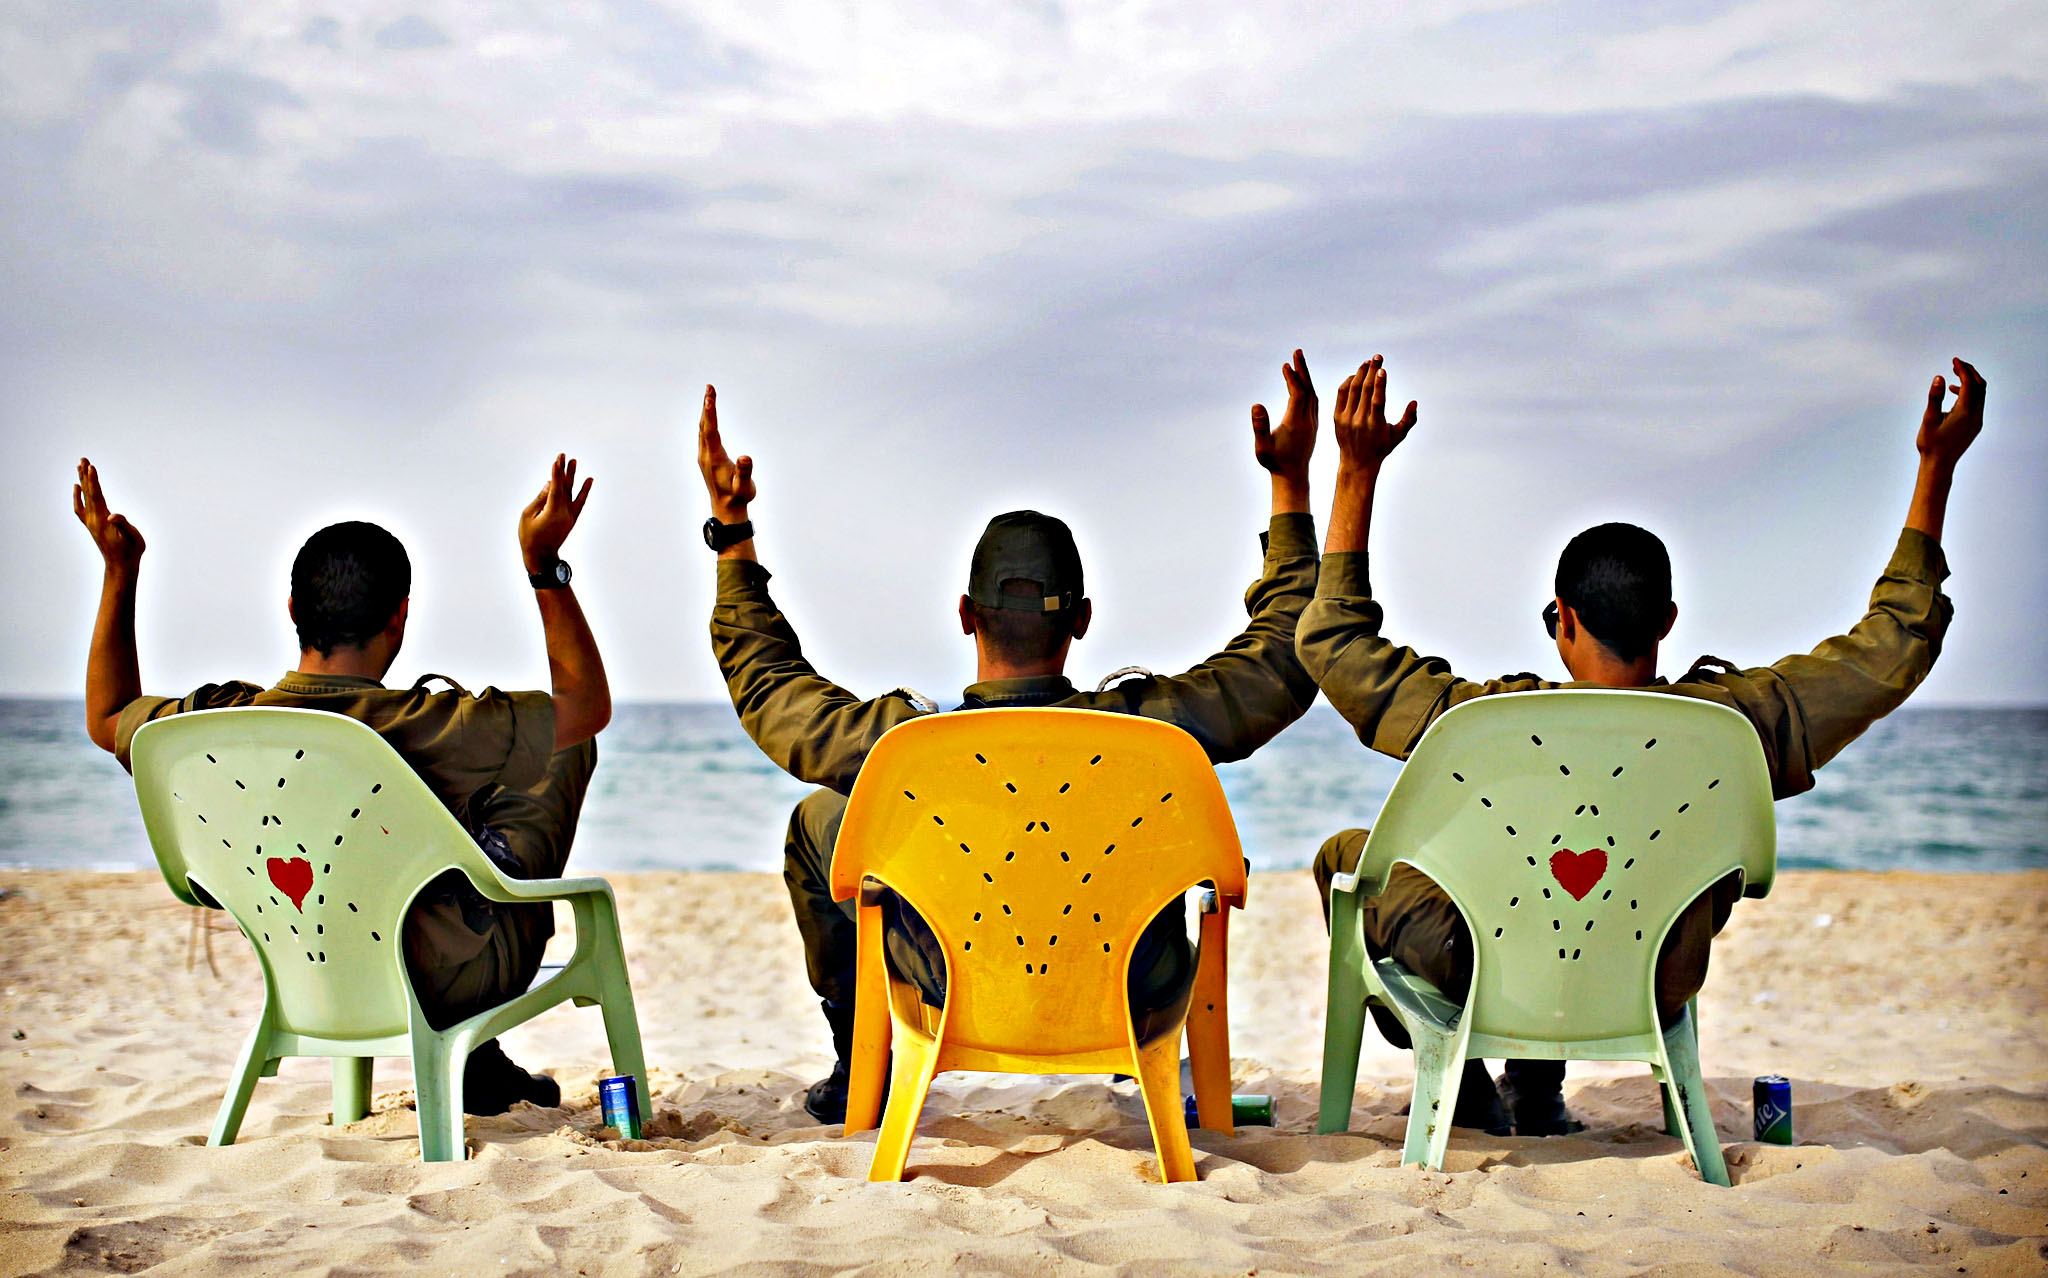 Israeli soldiers gesture as they sit in front of the Mediterranean at Zikim beach, near the southern city of Ashkelon November 27, 2013. Unseasonable temperatures reaching 32 degrees Celsius were recorded in some areas of Israel on Wednesday.